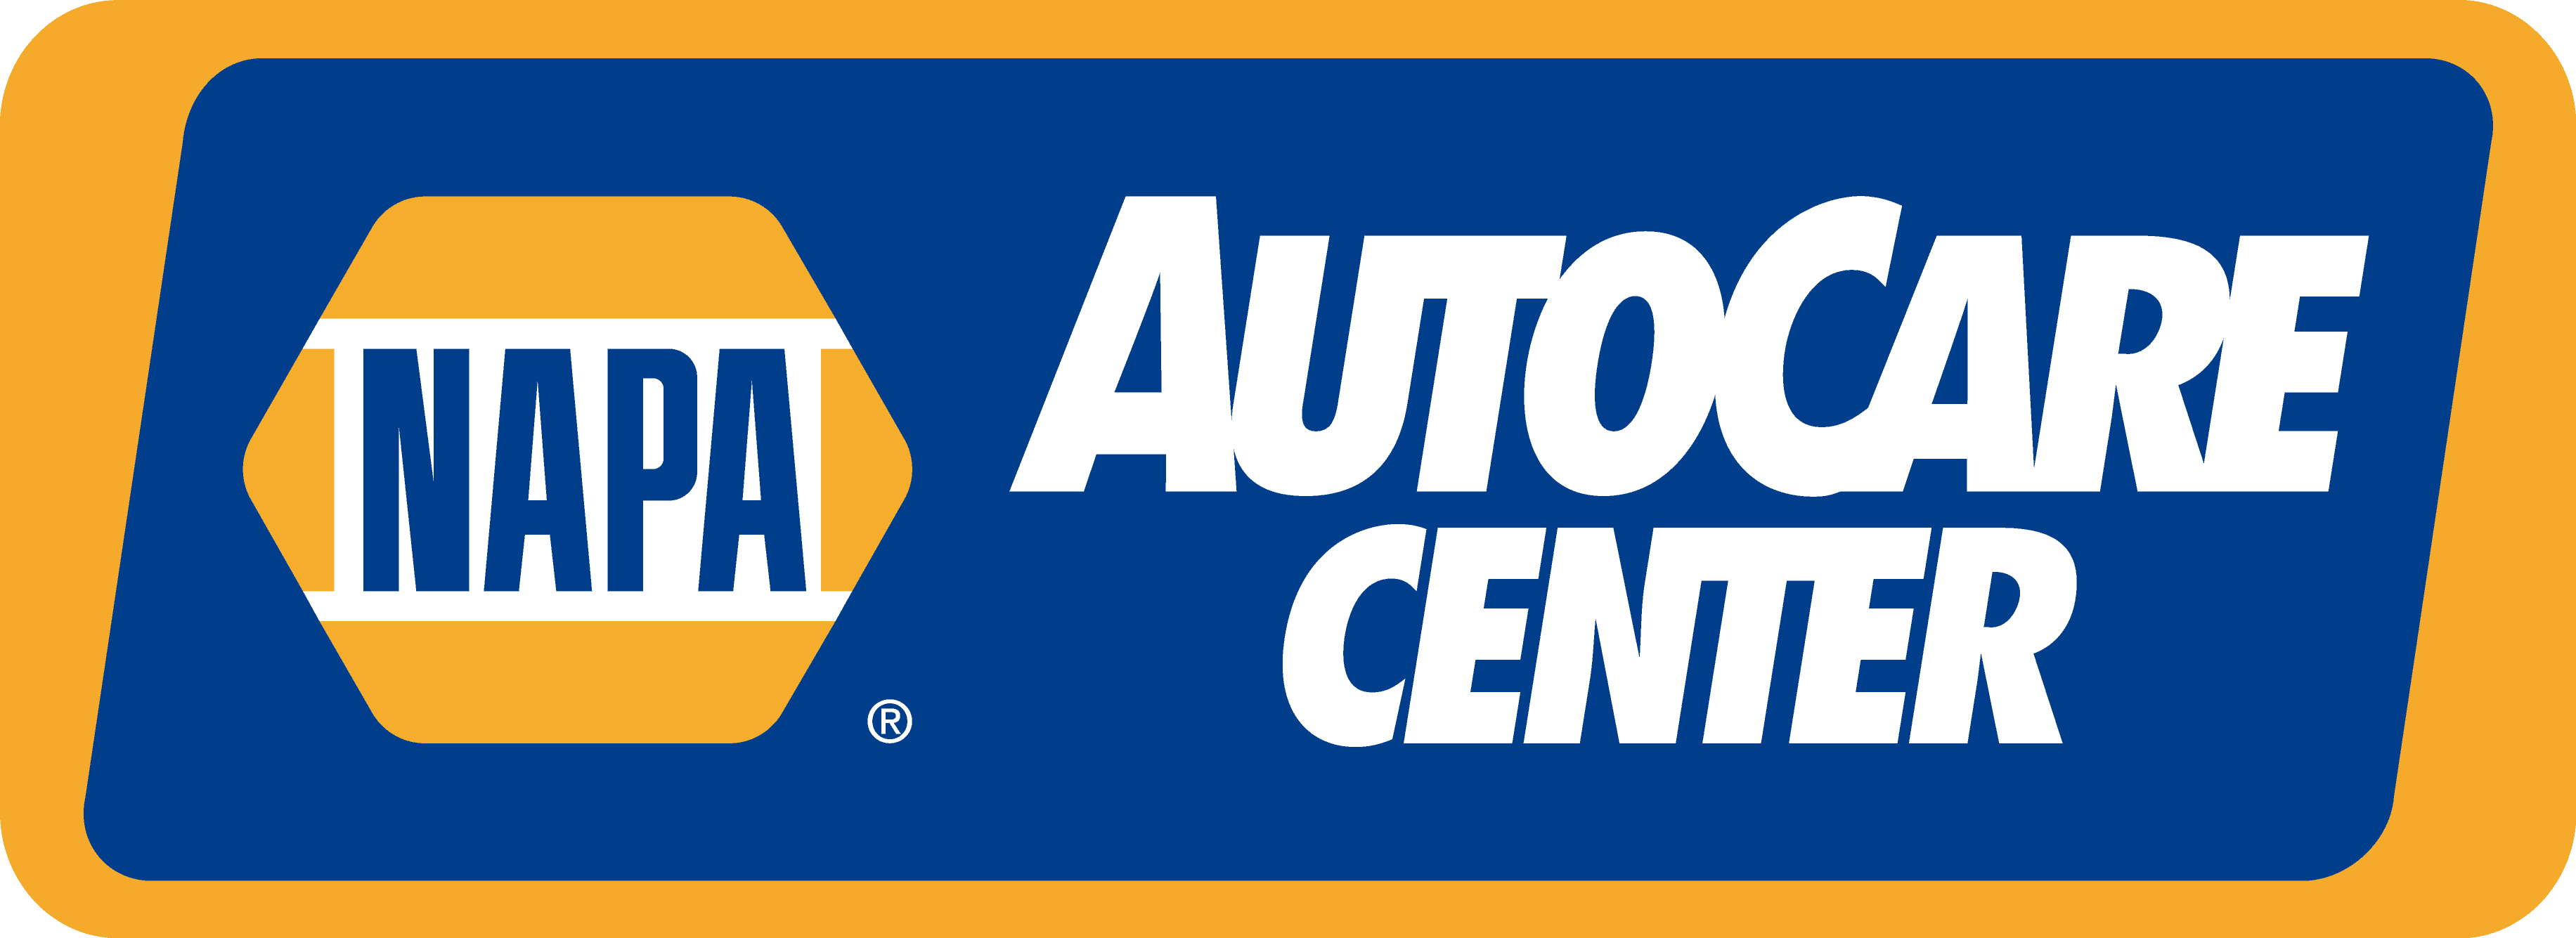 Napa Autocare Center provides tire alignment in Fairbanks